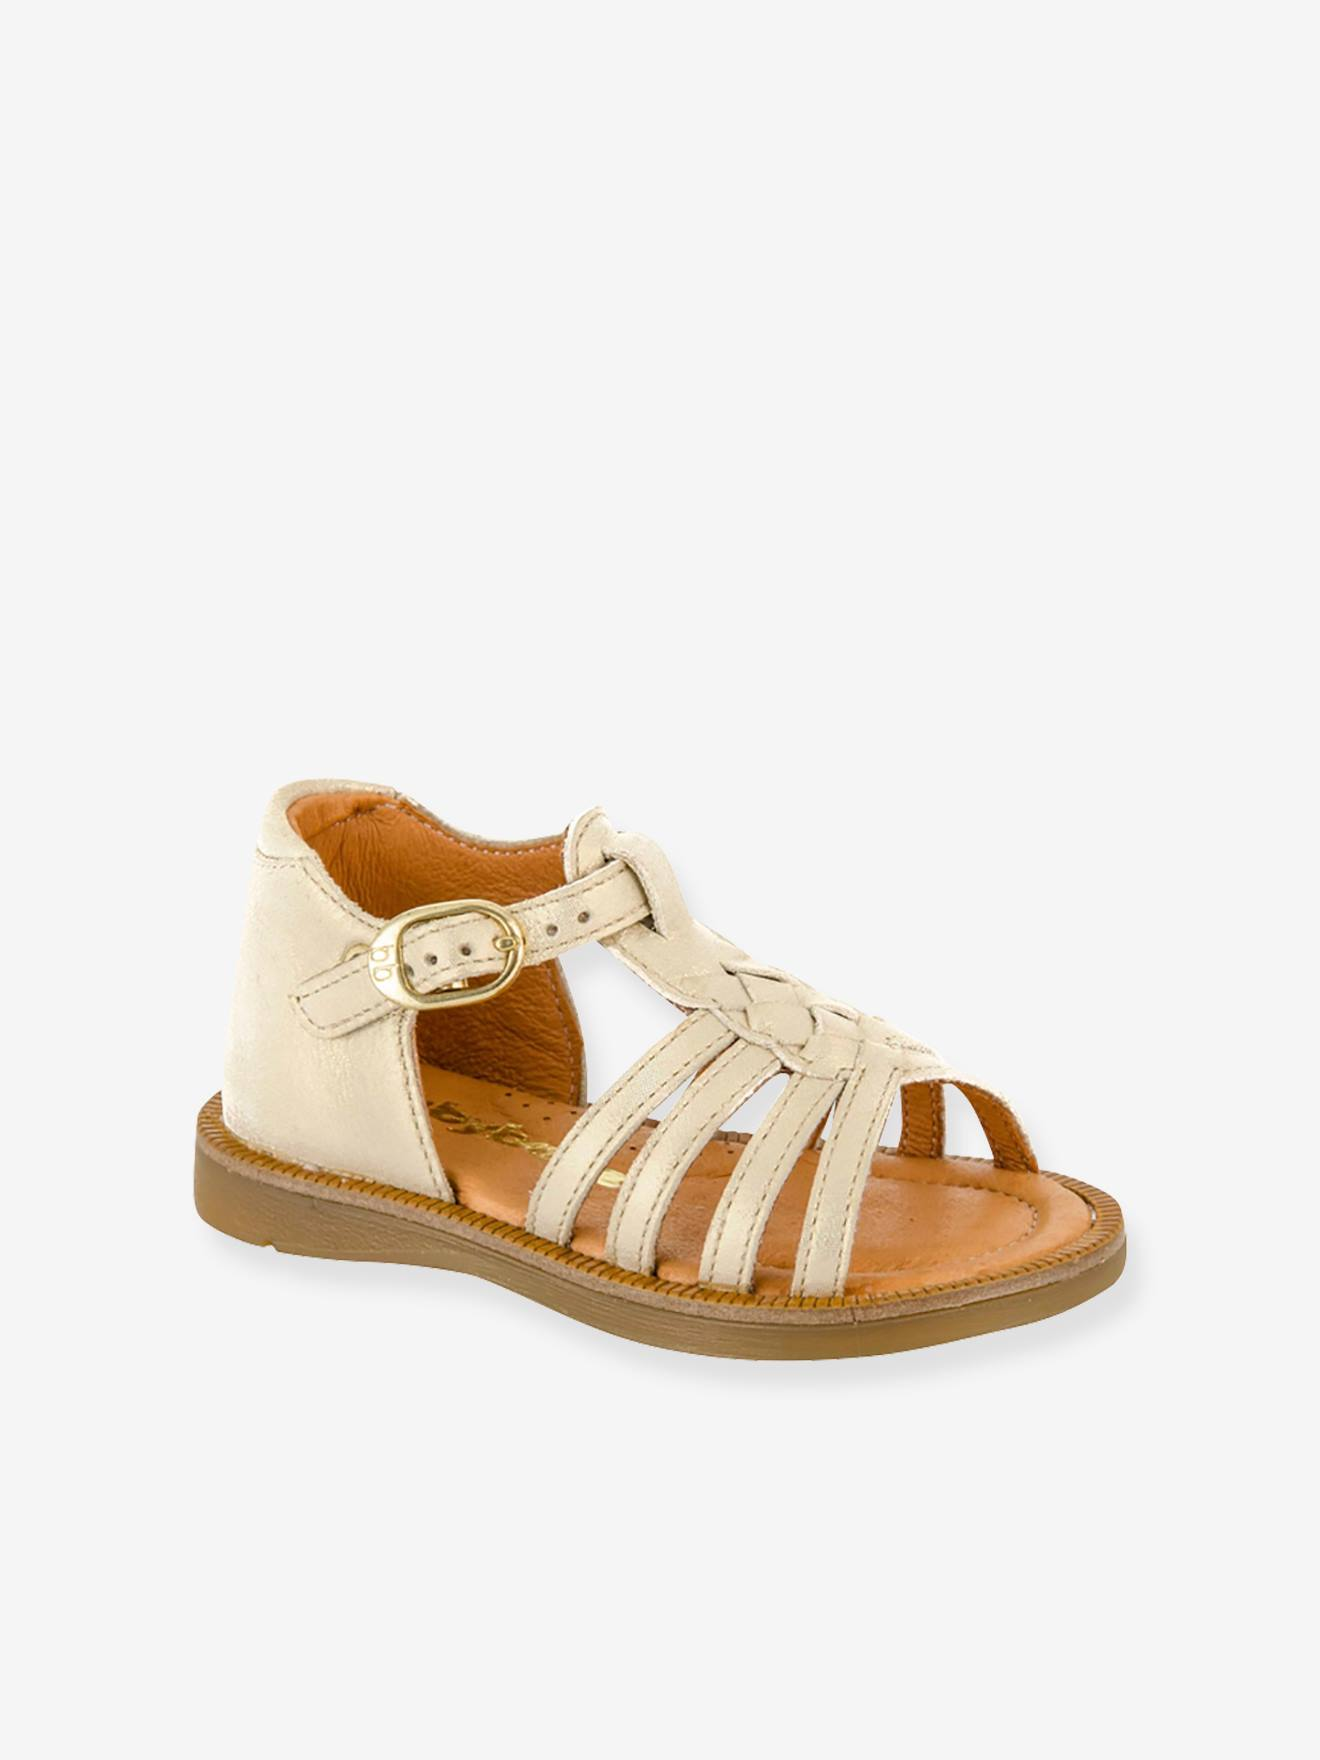 addc67d8a Leather Sandals for Baby Girls